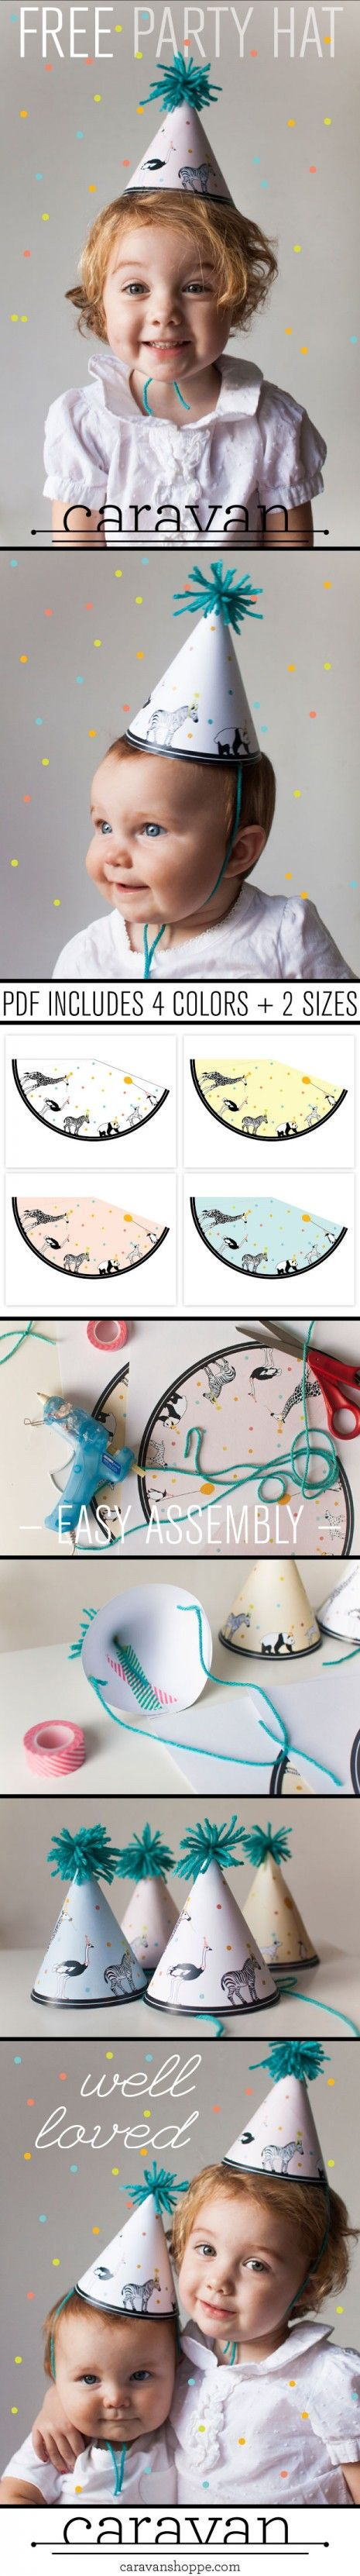 FREE Printable Party Animal hats from caravanshoppe.com // Love these designers! You don't want to miss out!